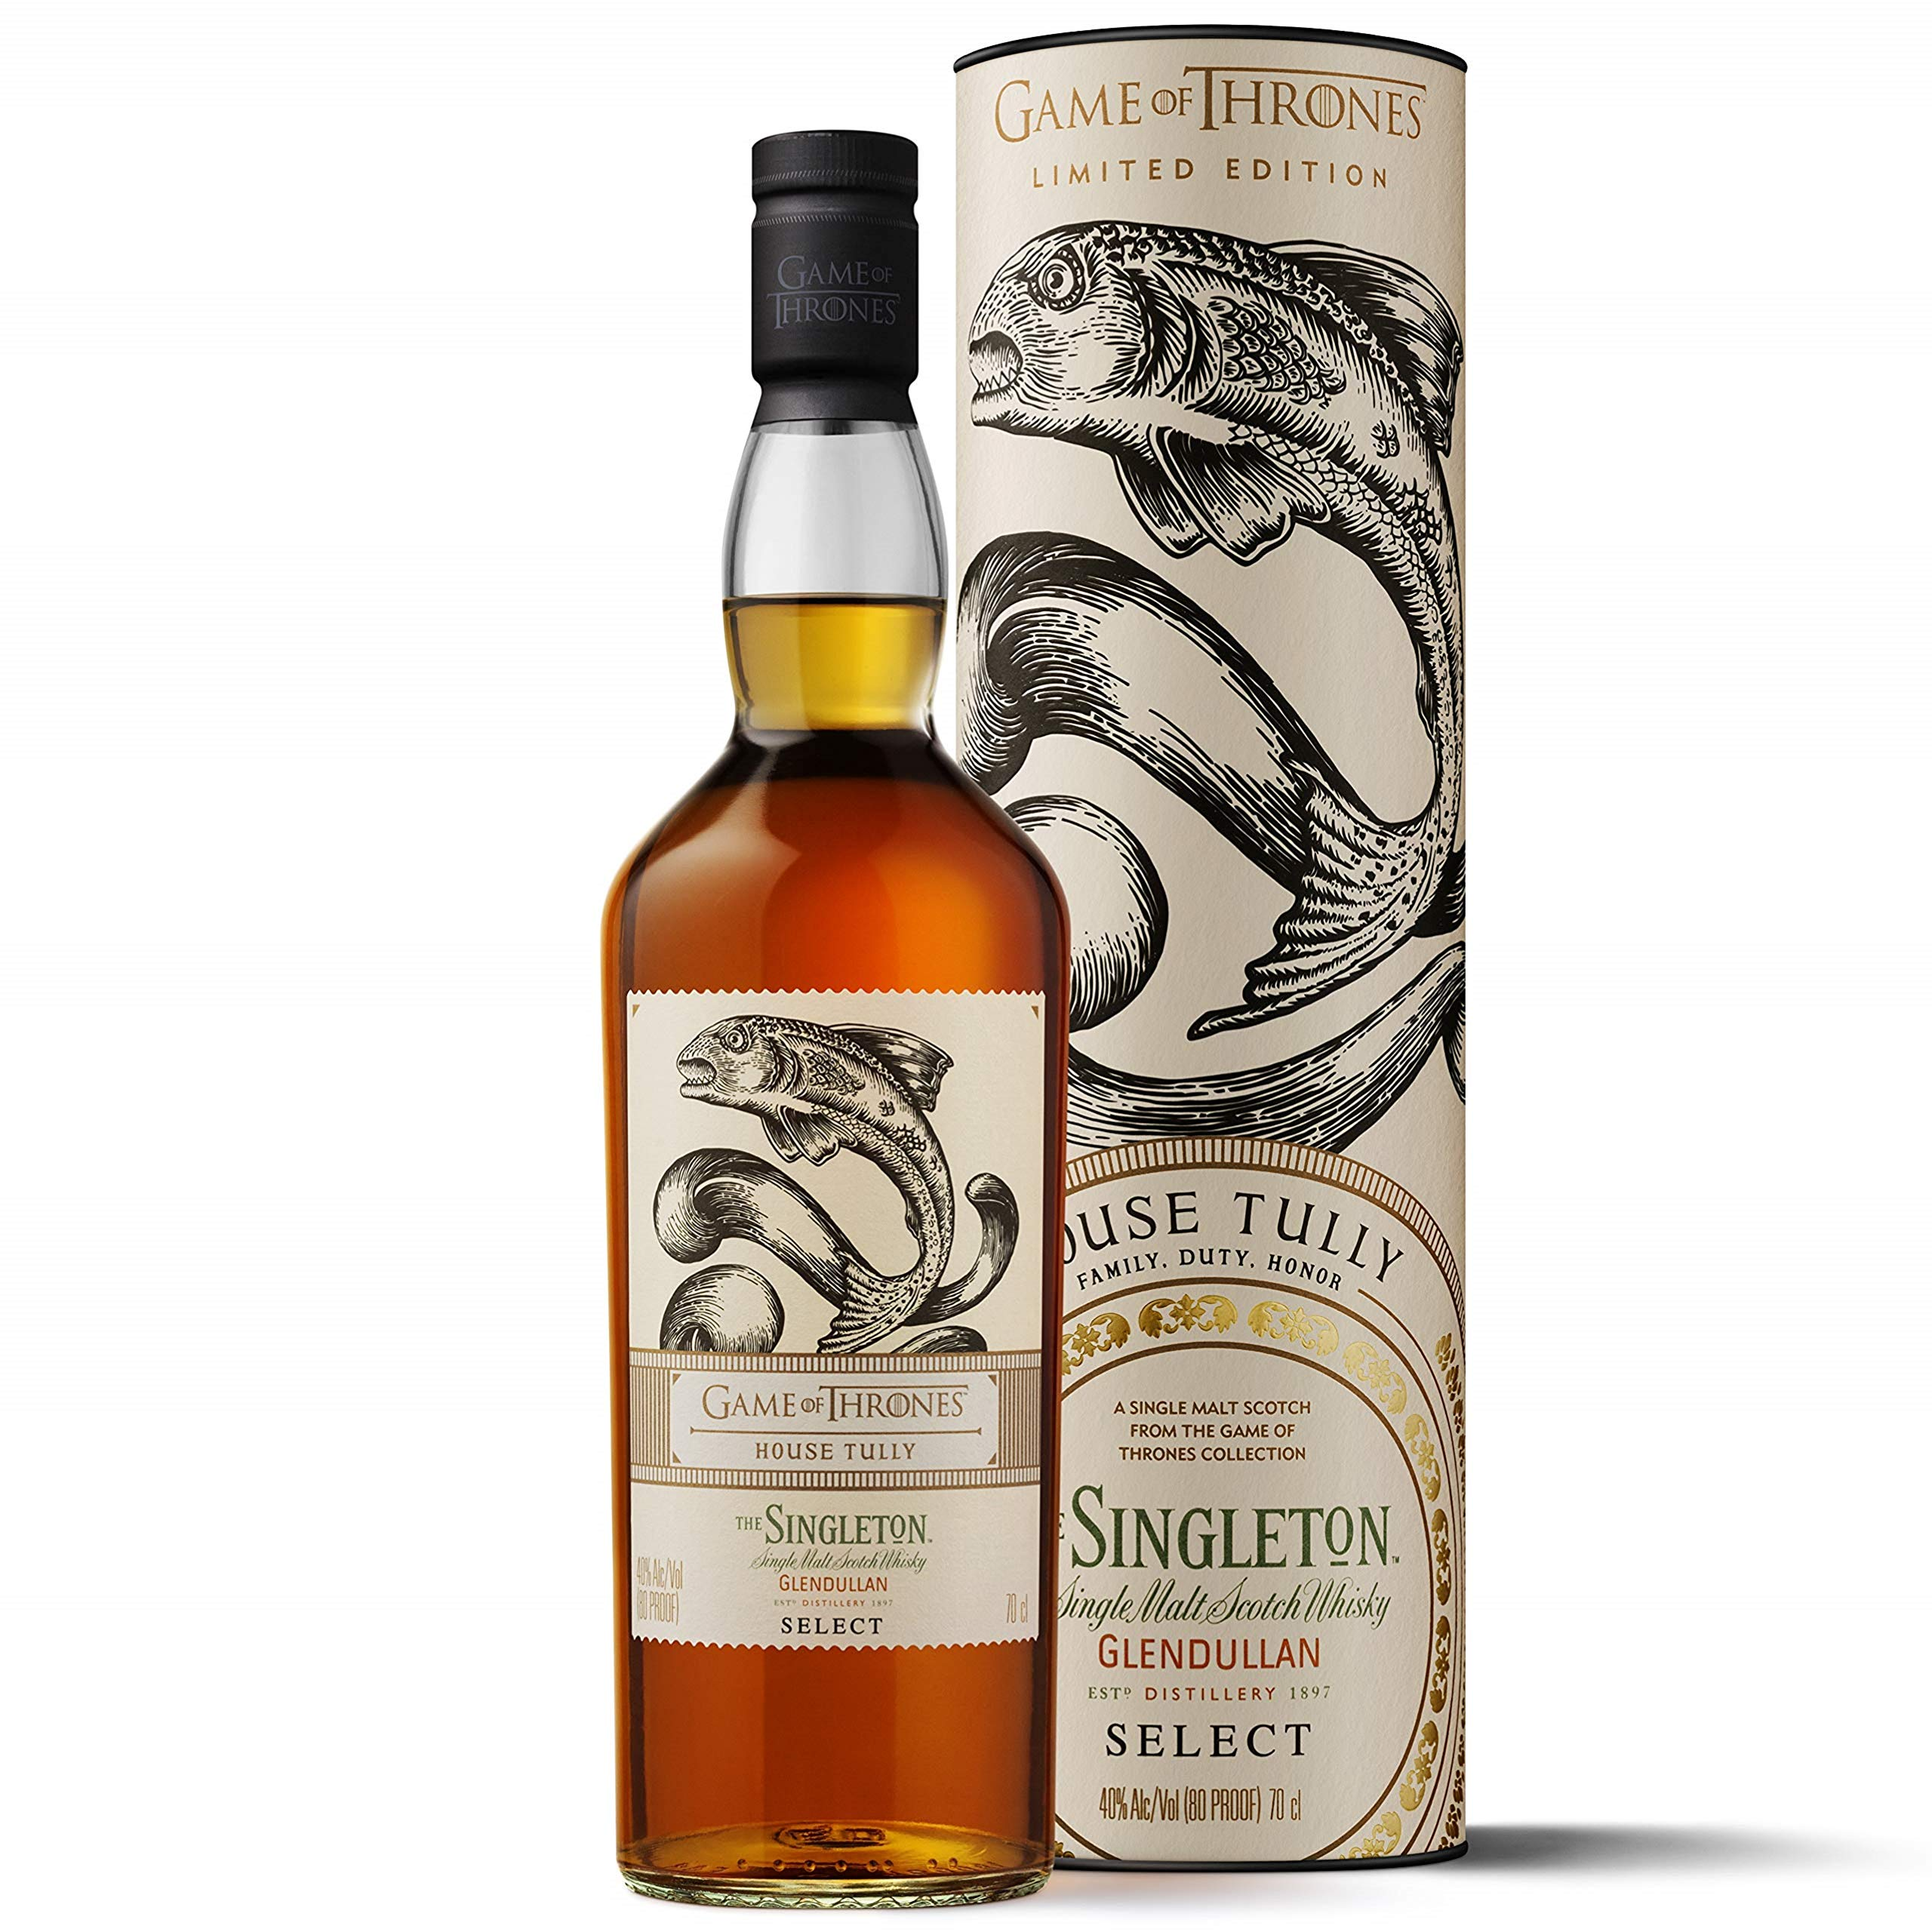 The-Singleton-of-Glendullan-Select-Single-Malt-Scotch-Whisky-Haus-Tully-Game-of-Thrones-Limitierte-Edition-1-x-07-l